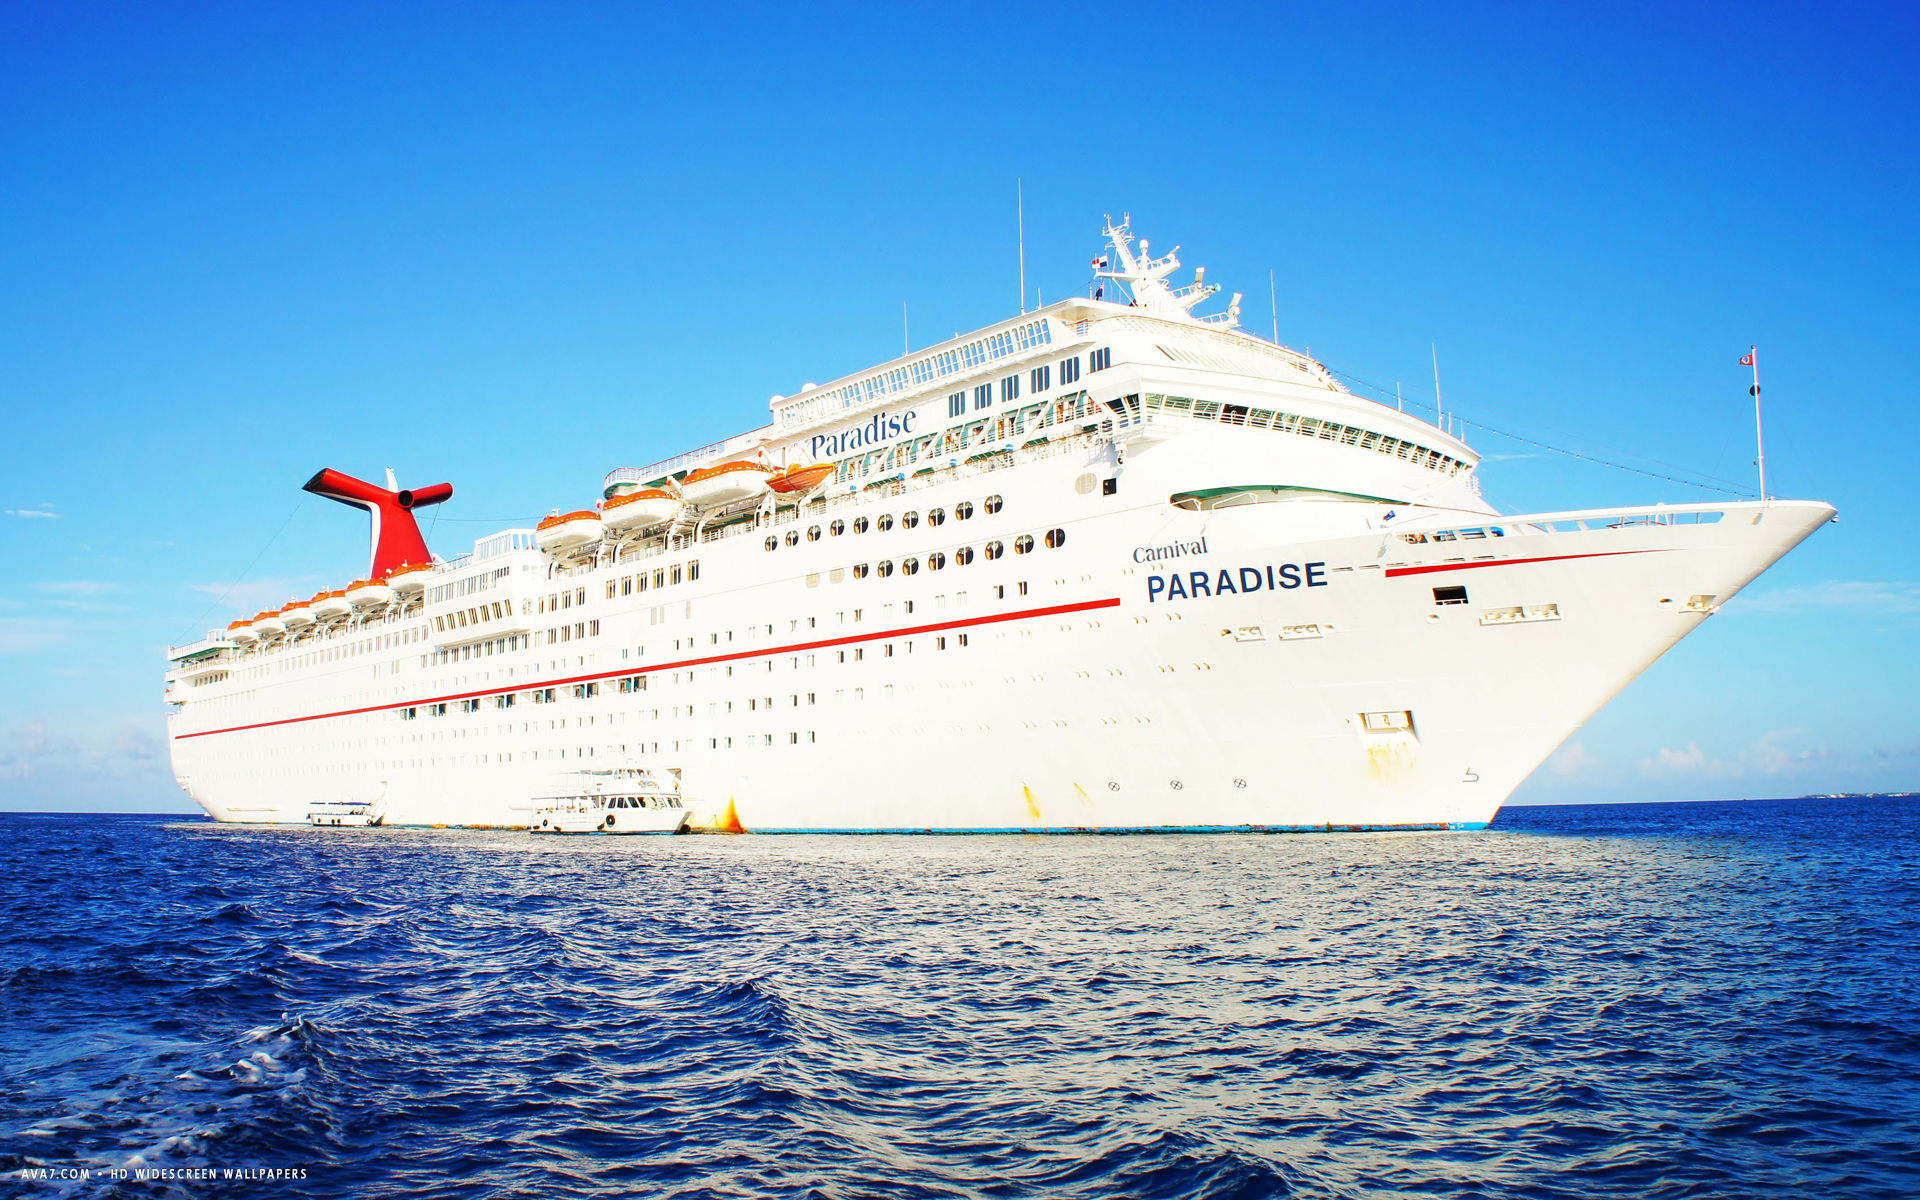 carnival paradise cruise ship hd widescreen wallpaper cruise ships 1920x1200